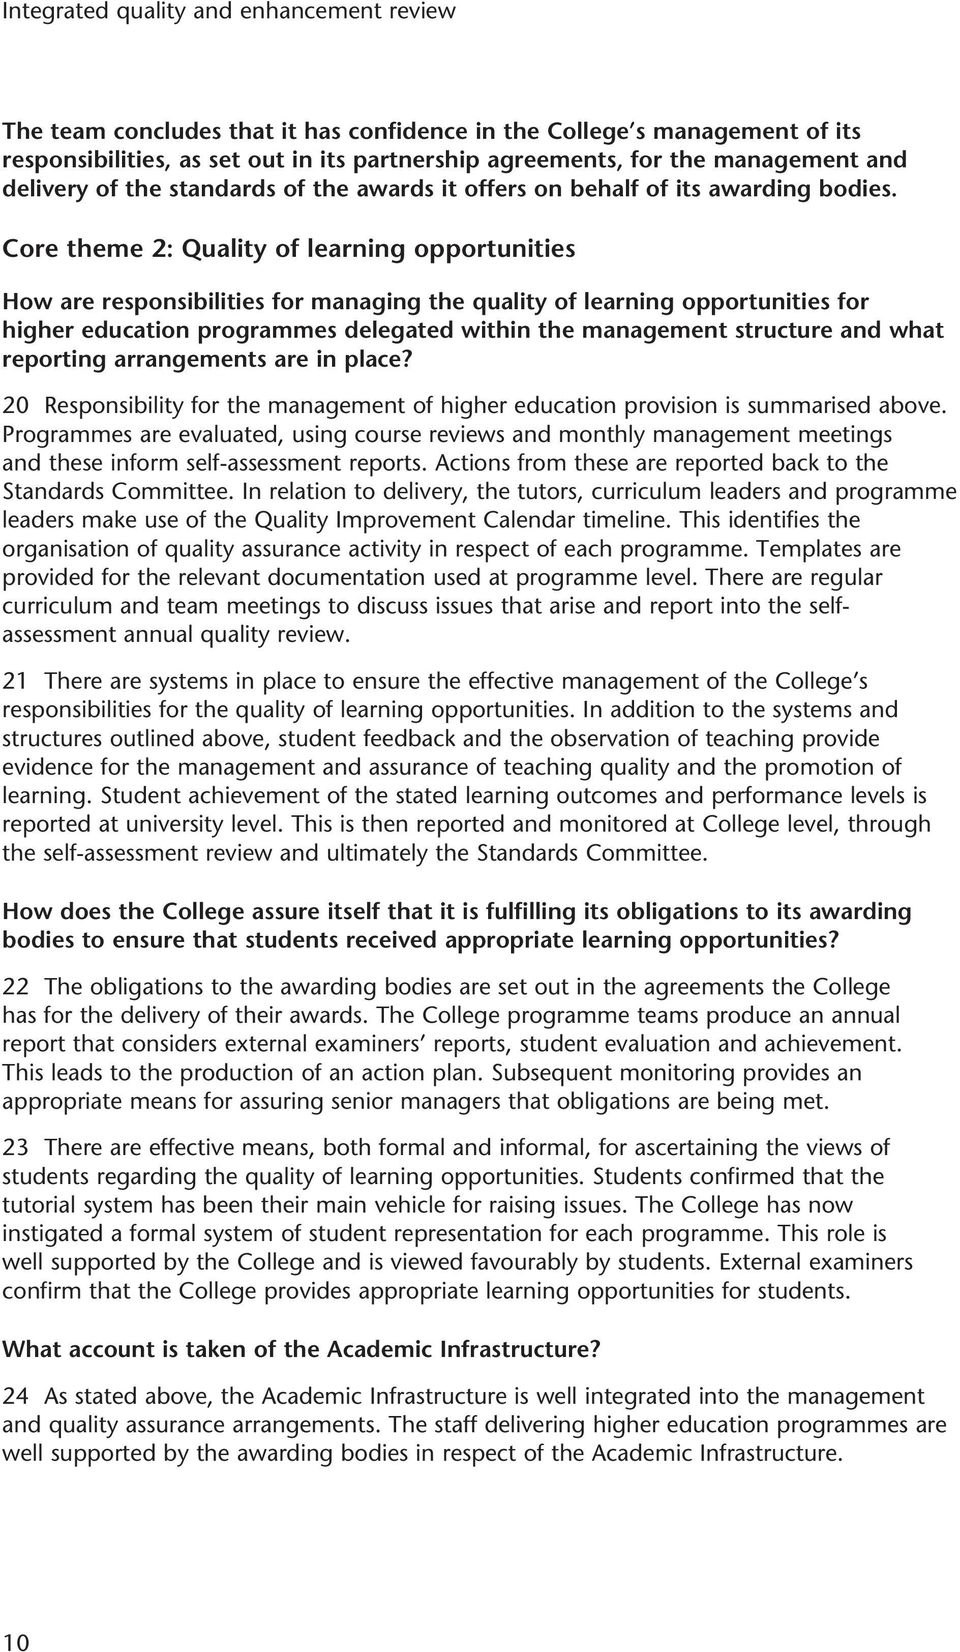 Core theme 2: Quality of learning opportunities How are responsibilities for managing the quality of learning opportunities for higher education programmes delegated within the management structure